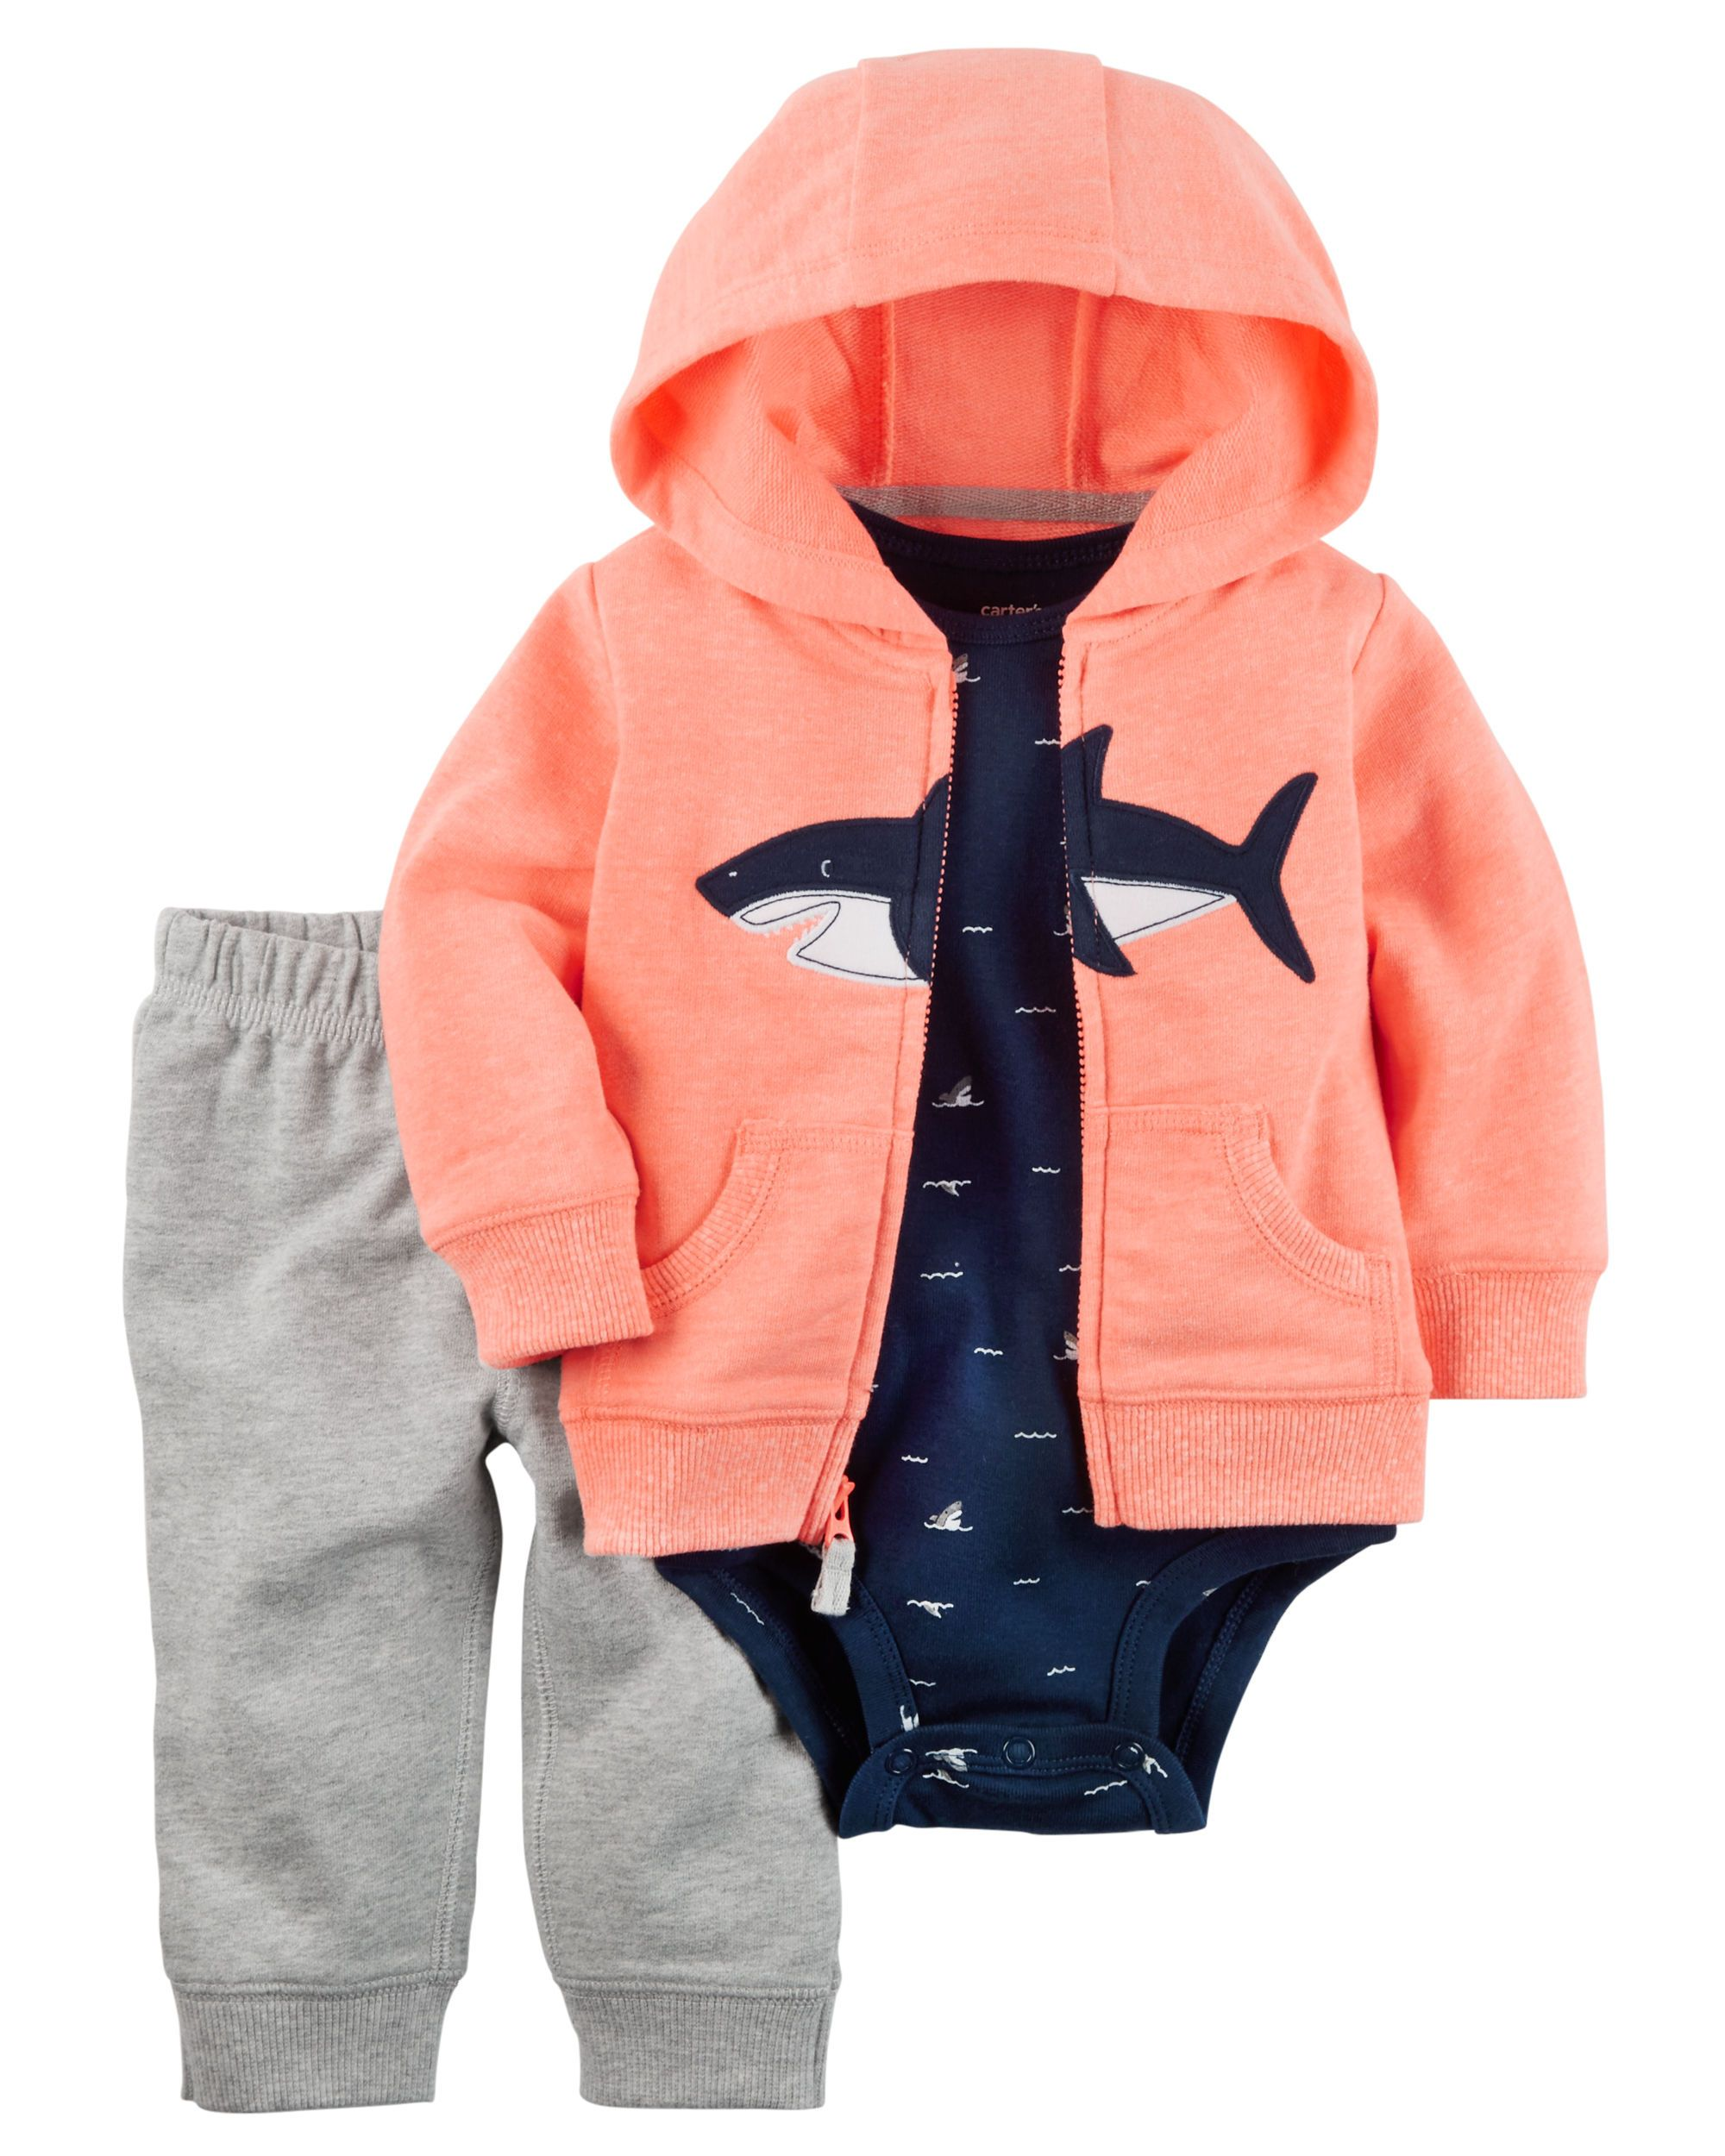 b24790ee0c Baby Boy 3-Piece Neon Little Jacket Set Designed for all-day play